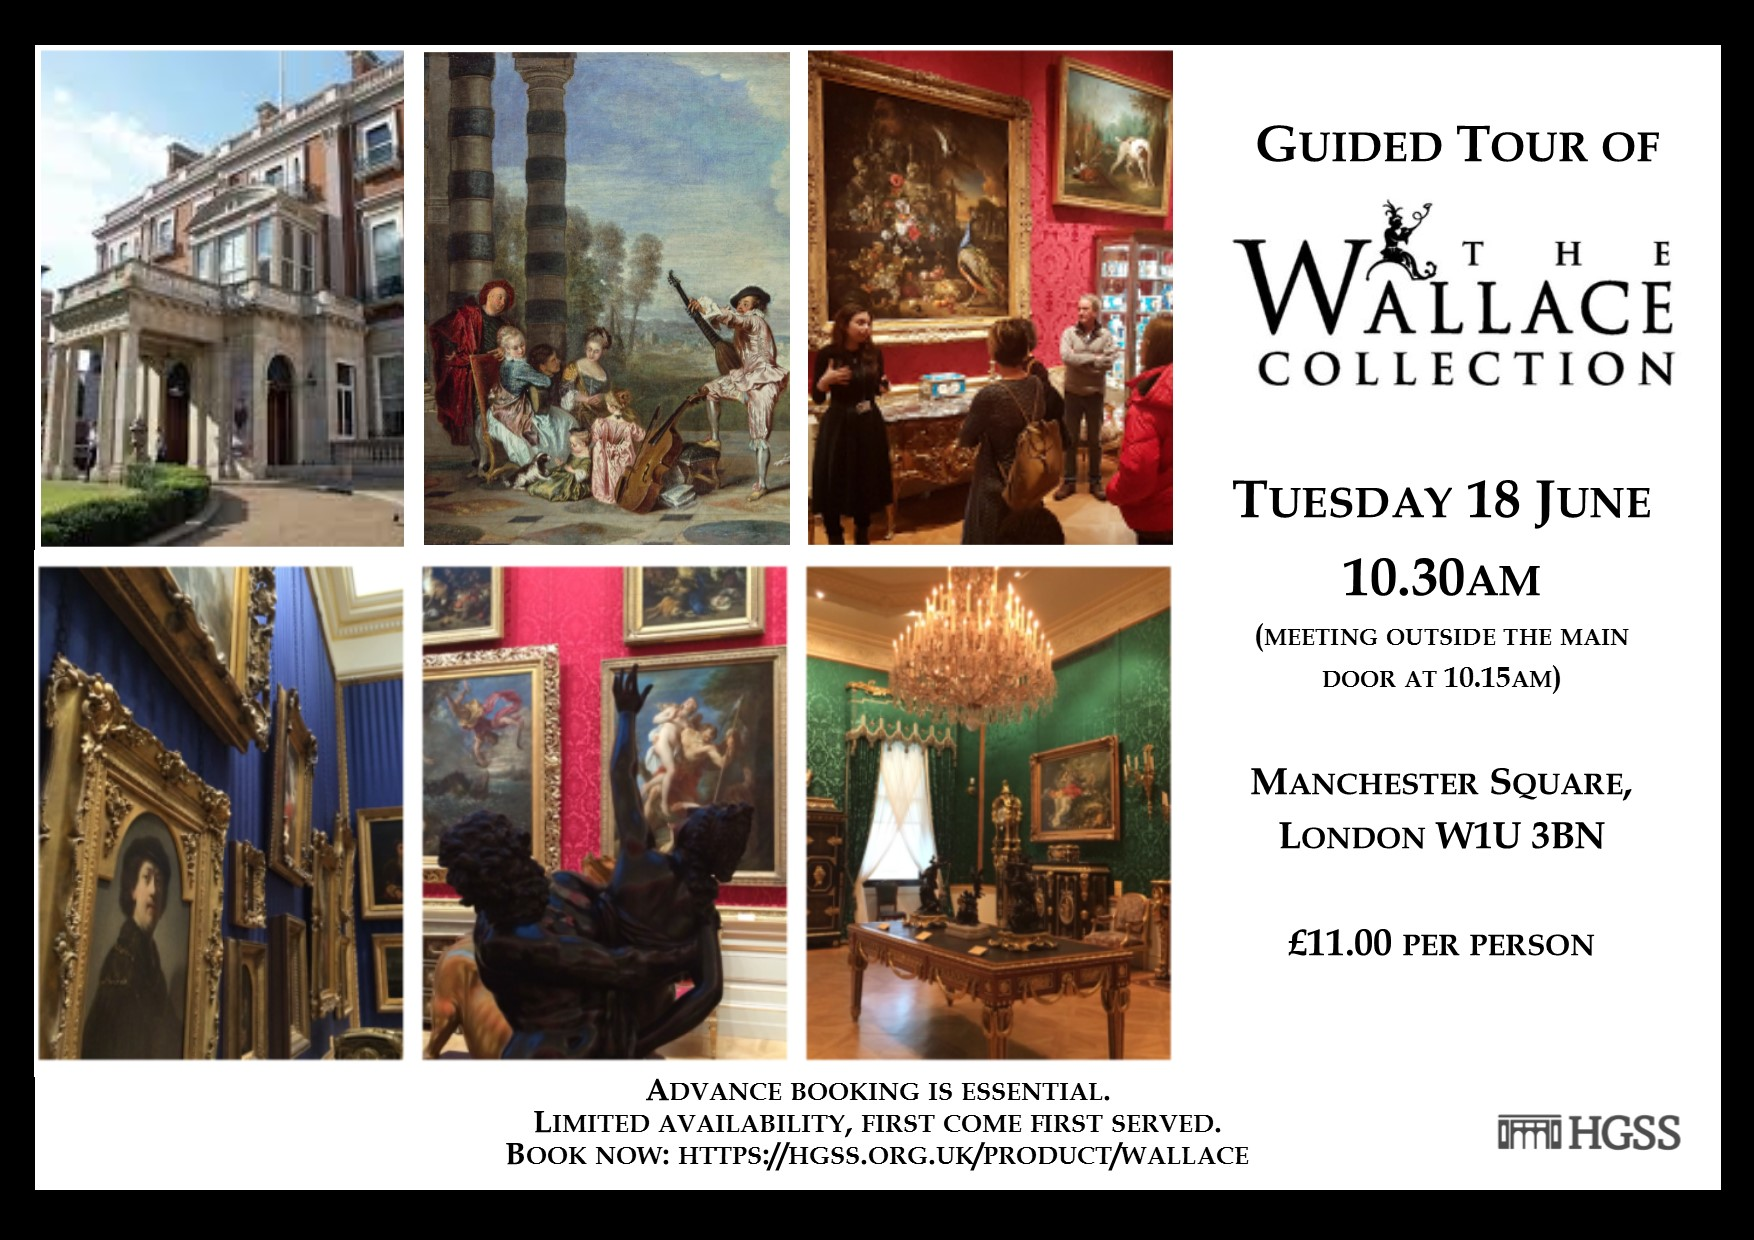 Guided Tour of the Wallace Collection